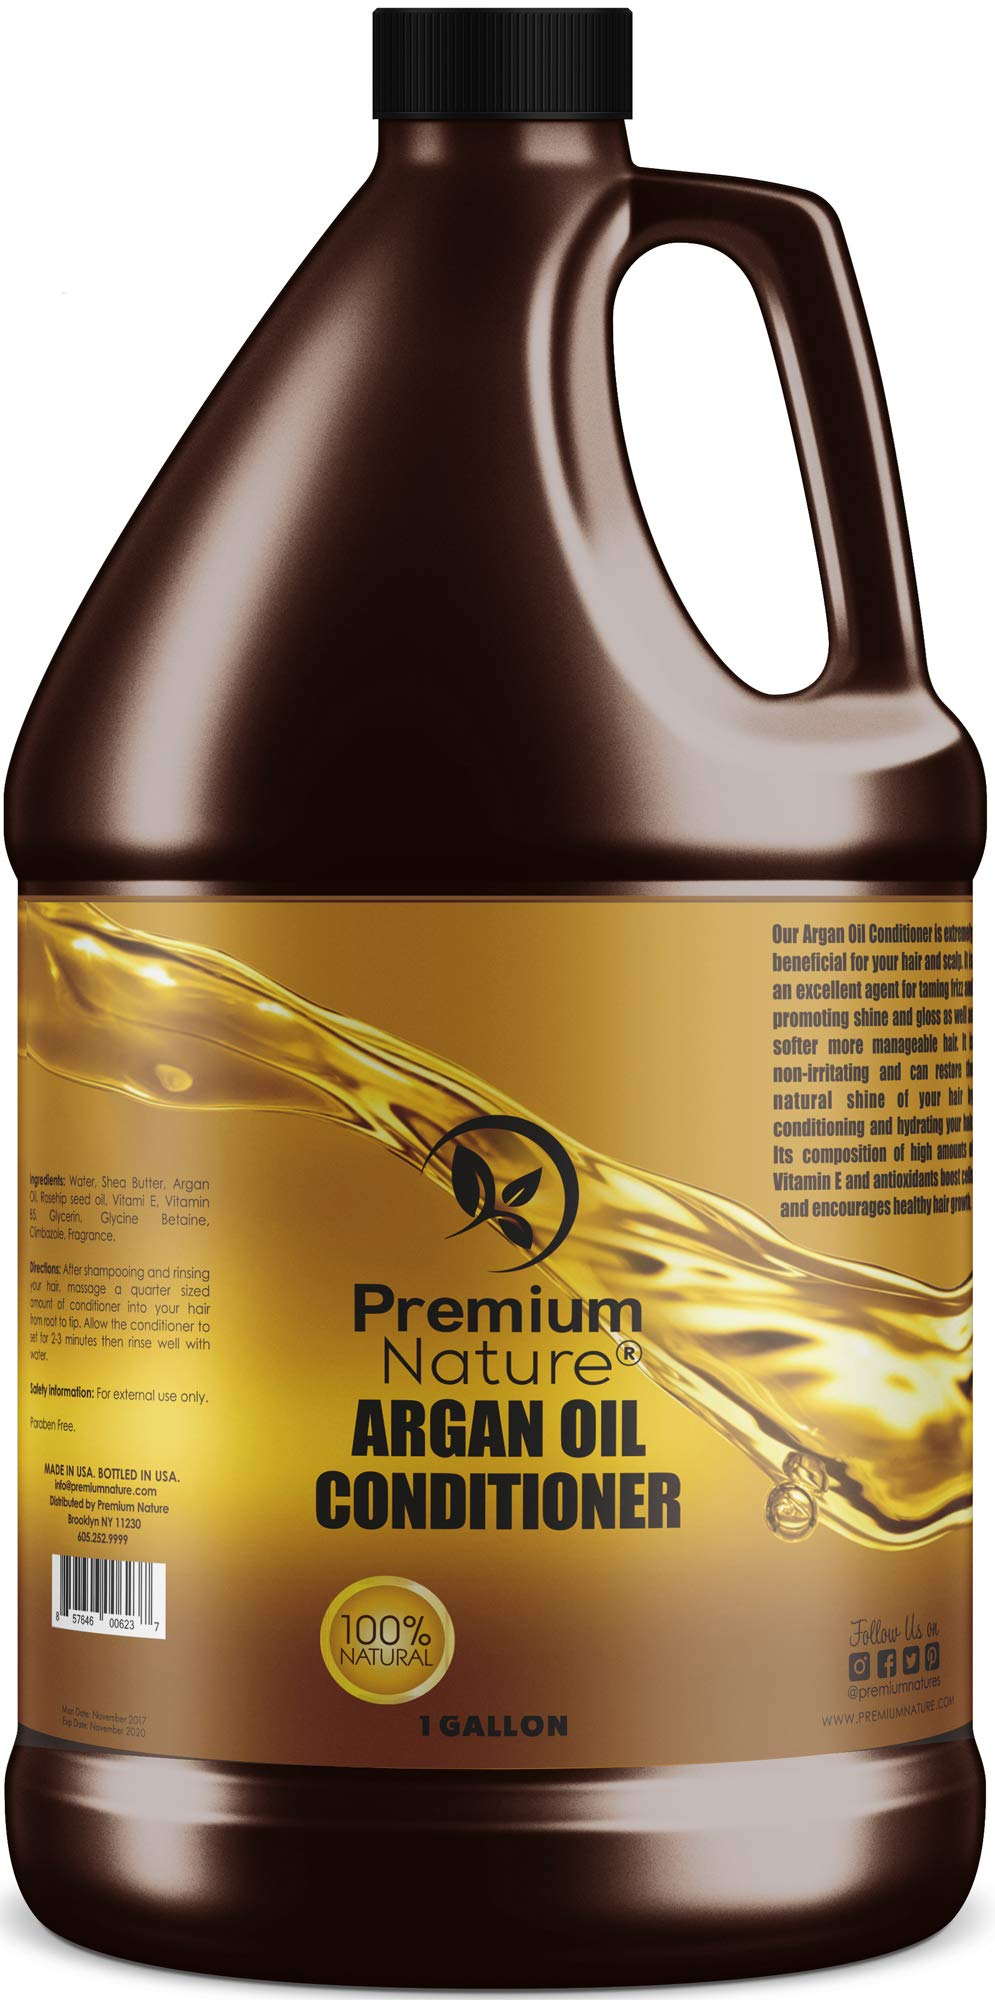 Argan Oil Deep Hair Conditioner - Sulfate Free Natural Moisturizer Hair Growth, Leave In Hair Mask Conditioning Hair Loss Dry Scalp Treatment Damaged Repair Gentle Colored Hair 1 Gallon Bulk by Premium Nature